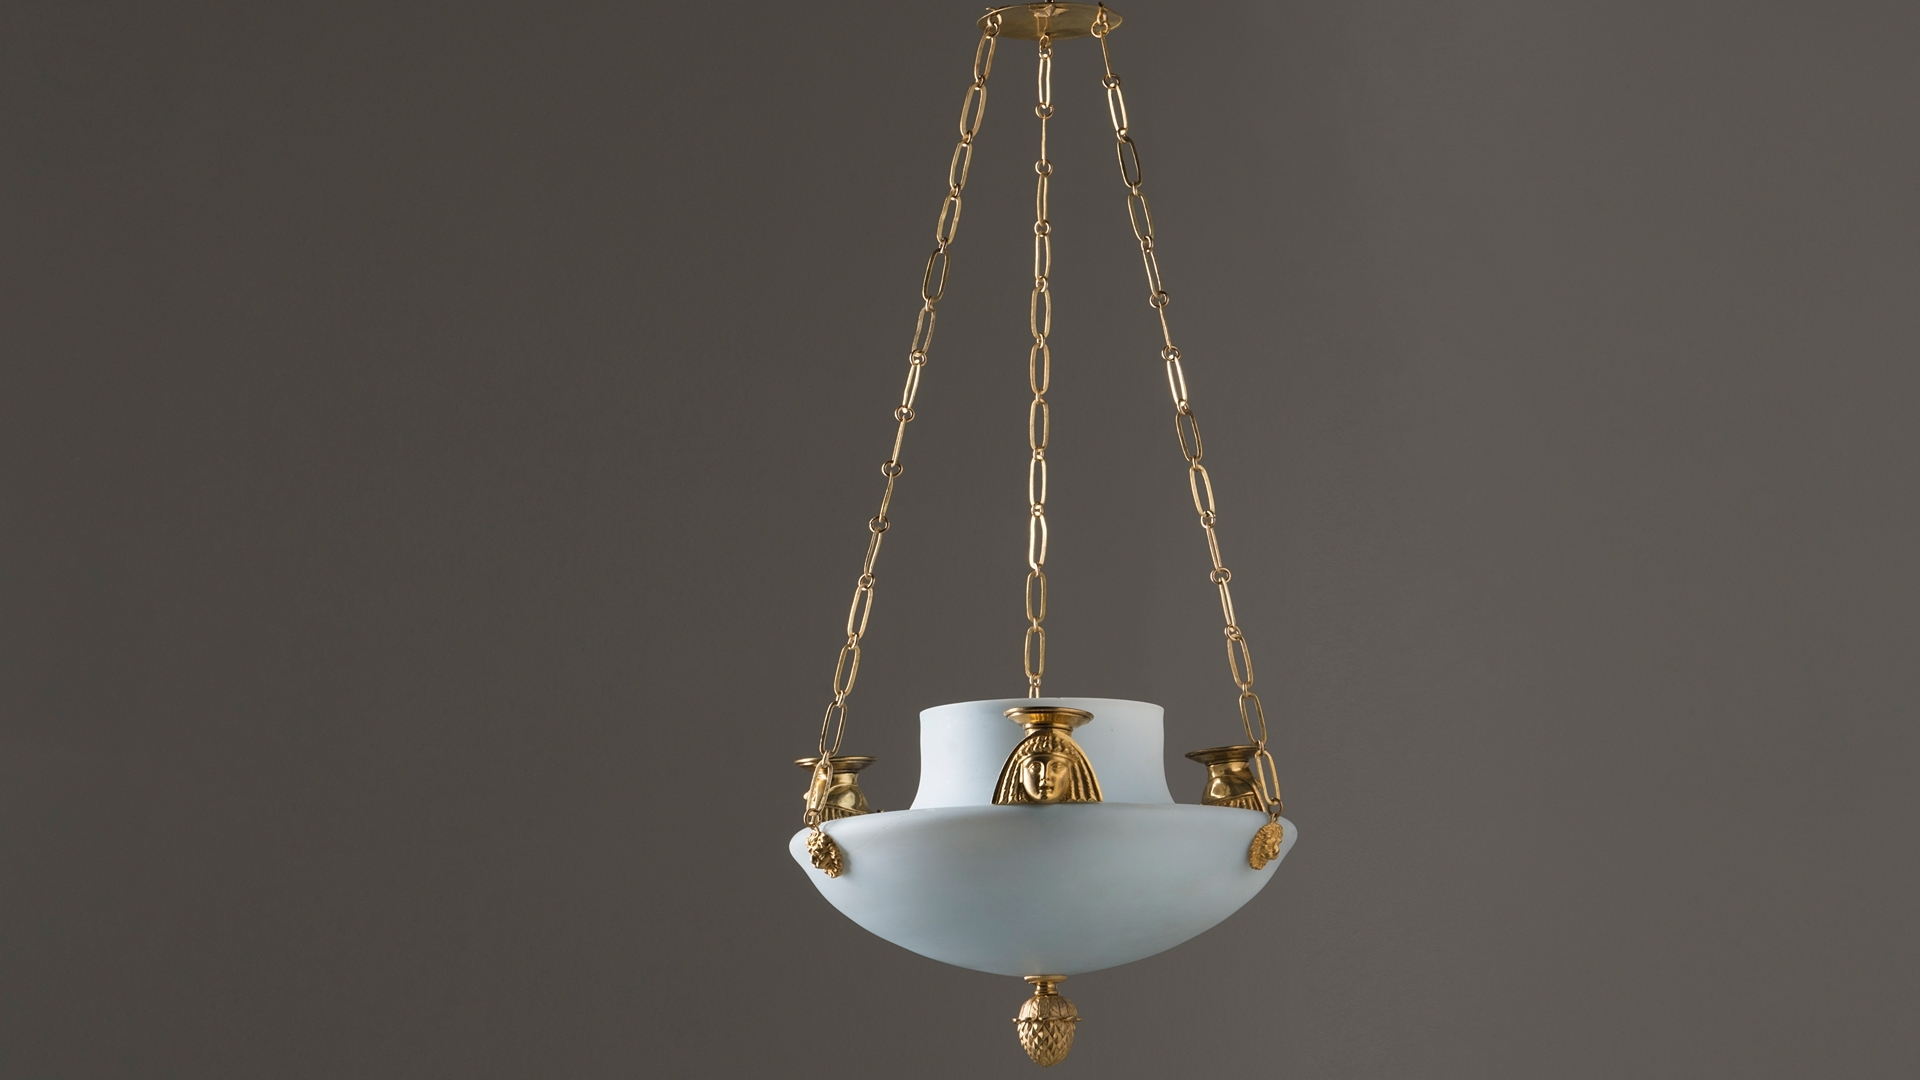 Chandelier In Egyptian Taste Circa 1800 Hoffmans Antikhandel With Regard To 2019 Egyptian Chandelier (View 3 of 20)